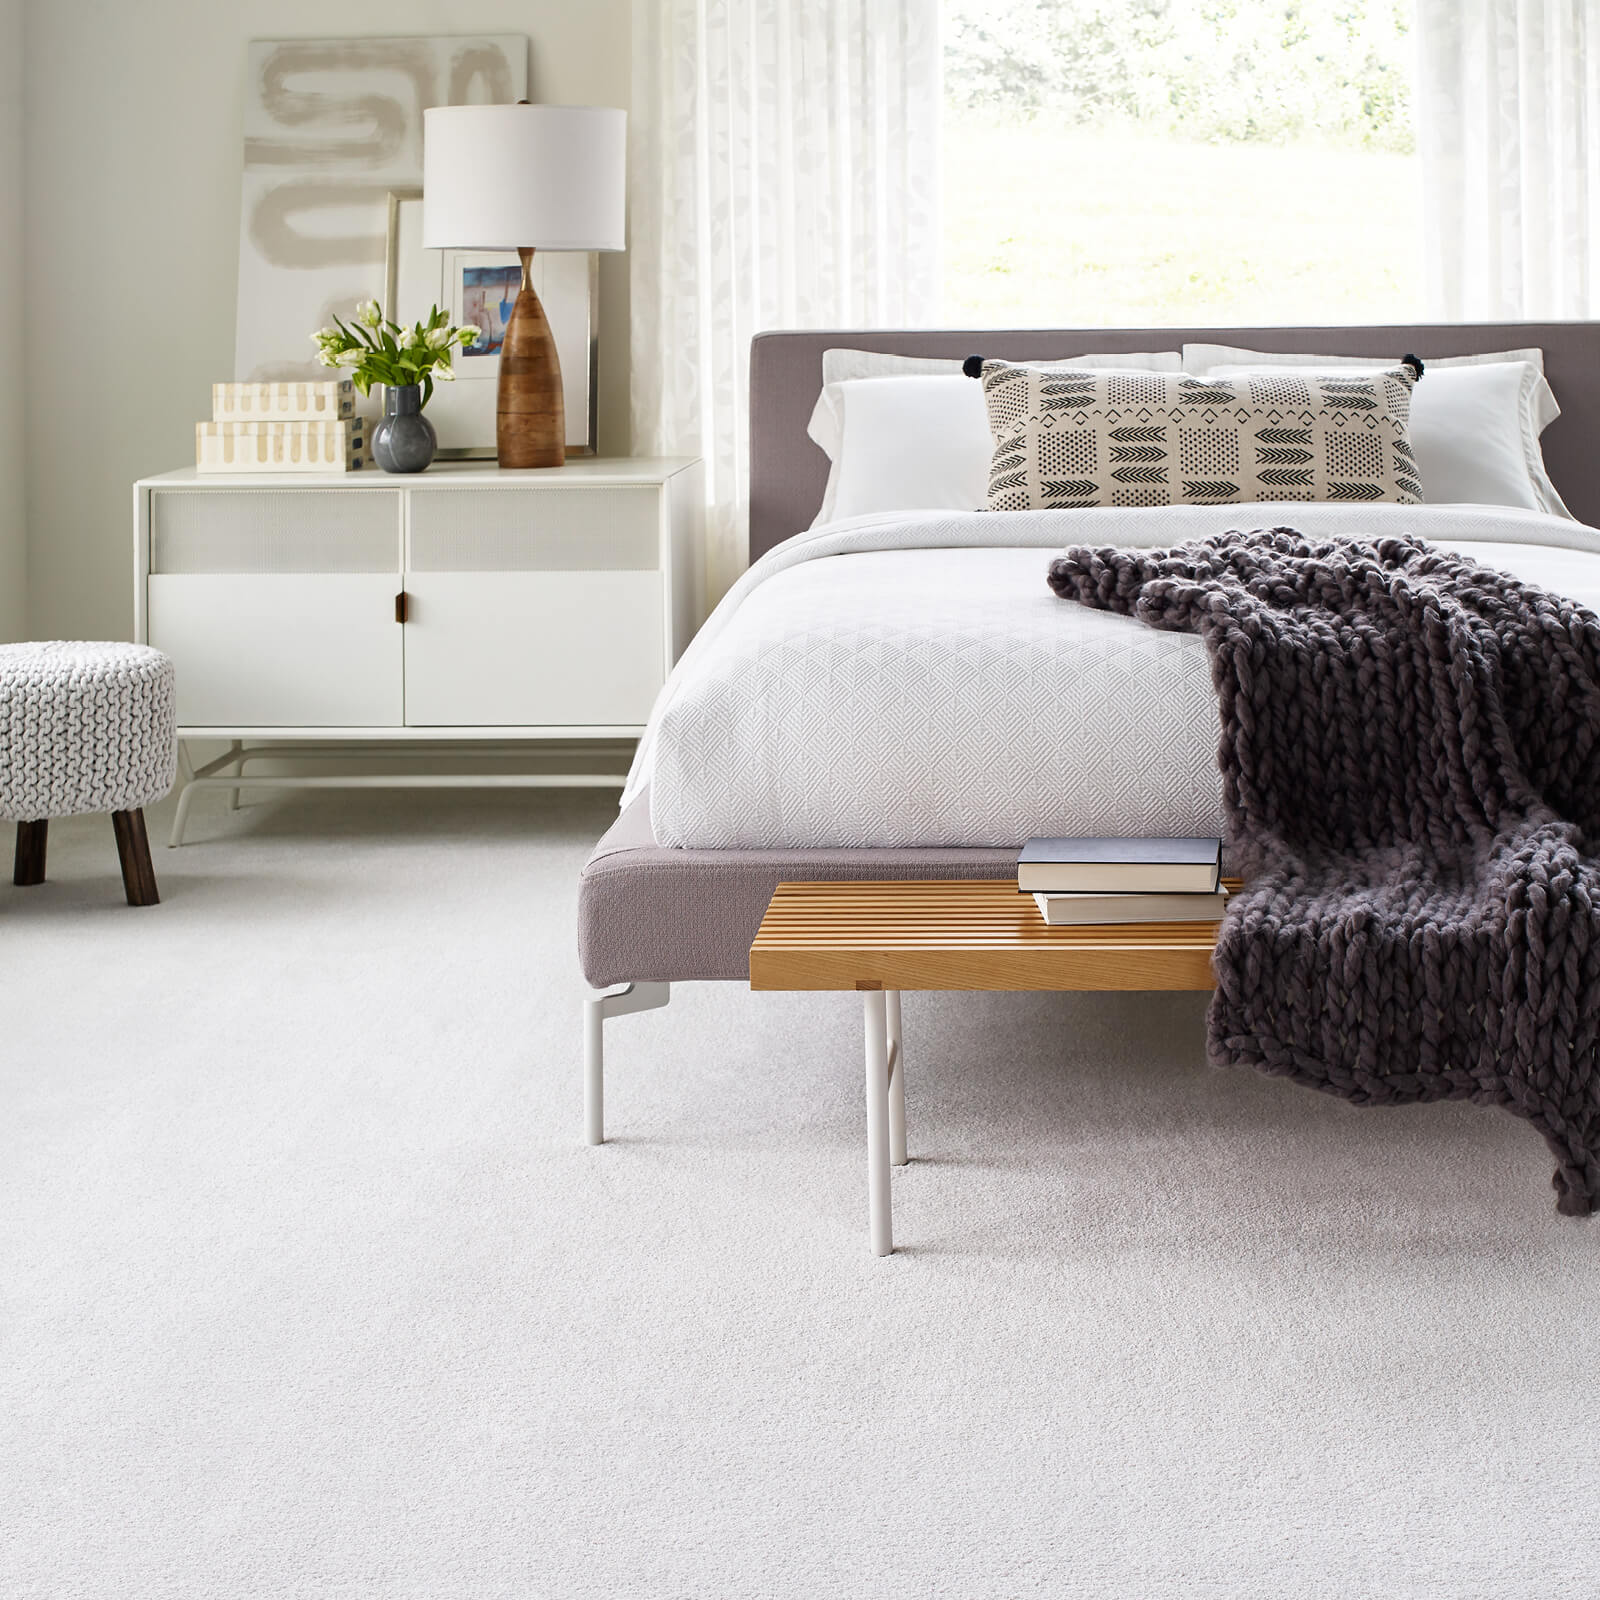 Bedroom flooring | All Floors Design Centre